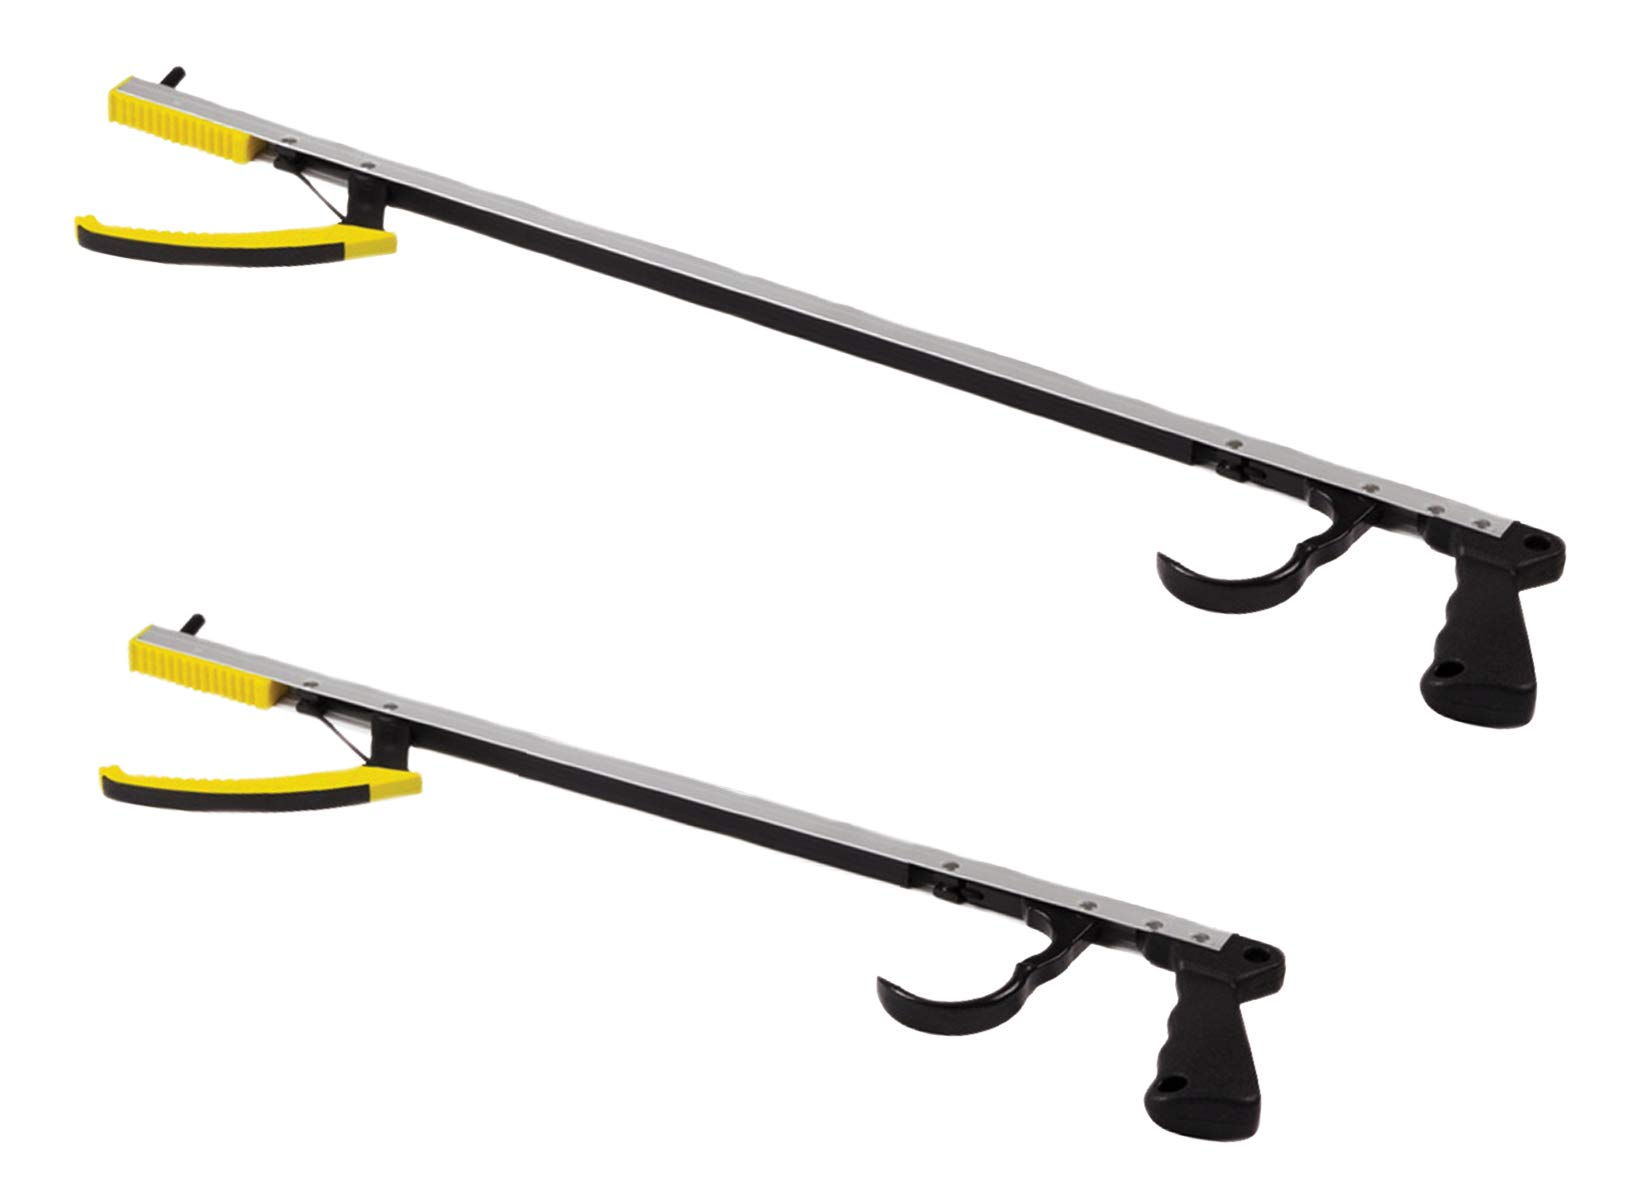 Deluxe Jaw/Trigger Reaching Aid, Pistol Grip, Long and Short Grabber Reachers - Magnetic Tip to Pick Up Small Objects - Mobility Aid Reaching Assist Tools, Arm Extension - 20-inch and 32-inch Bundle